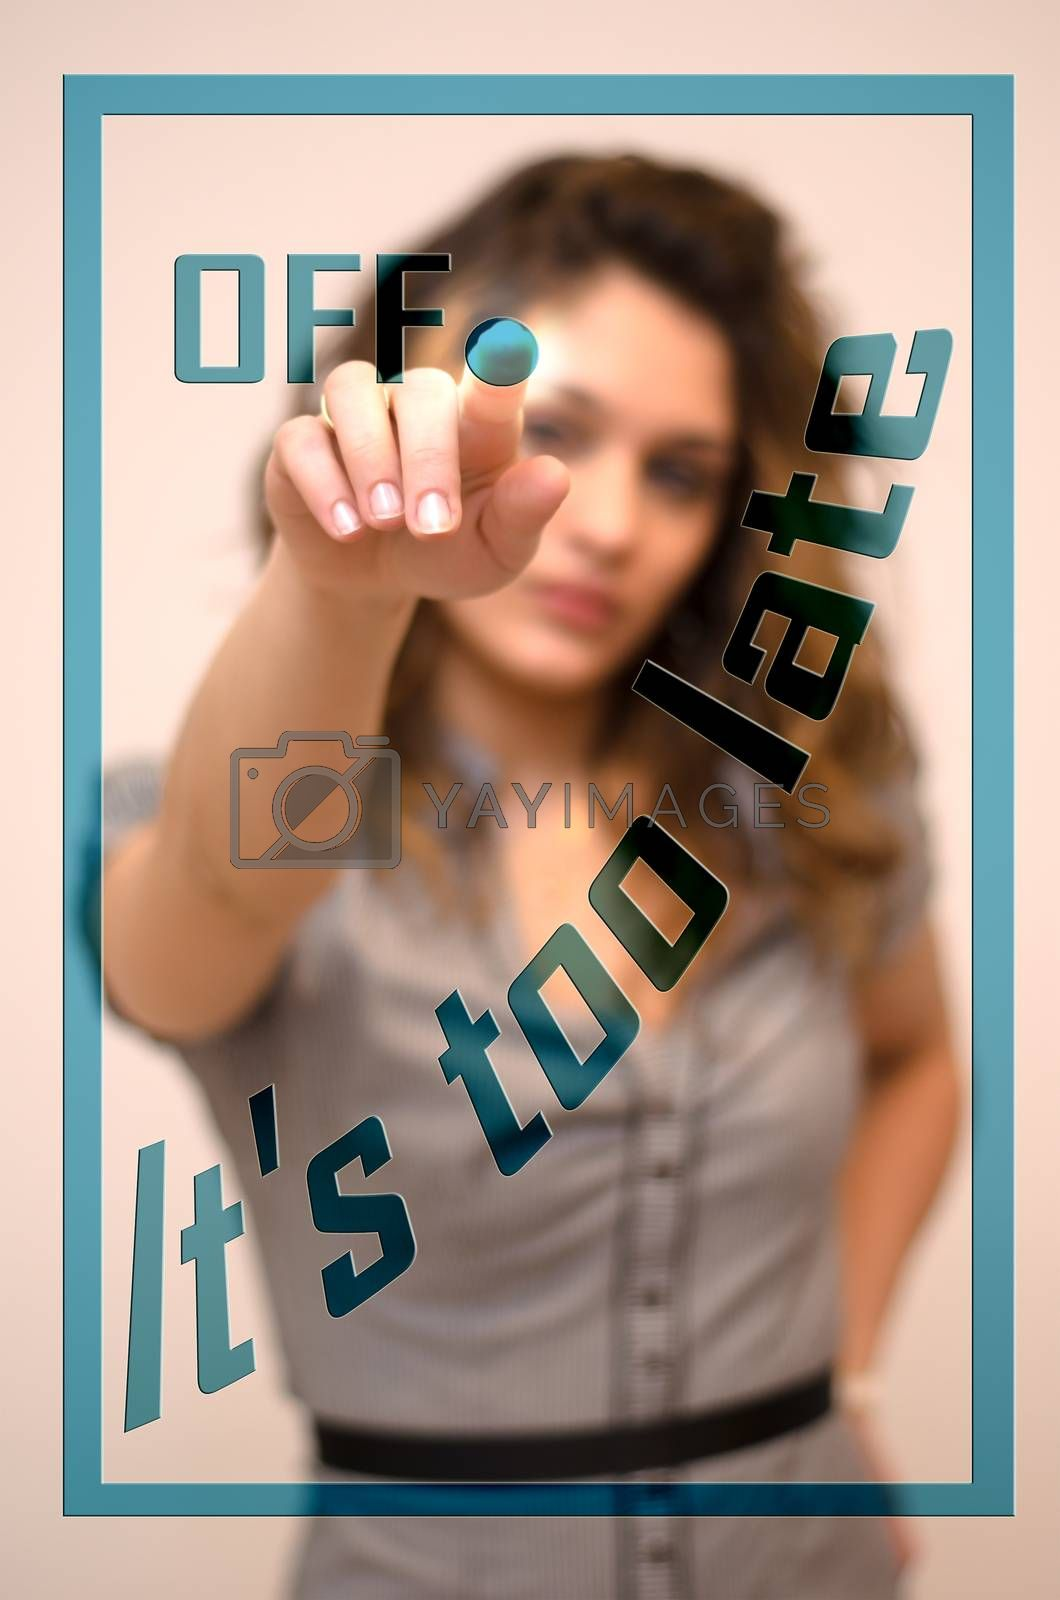 Royalty free image of woman turning off It's too late on panel by vepar5